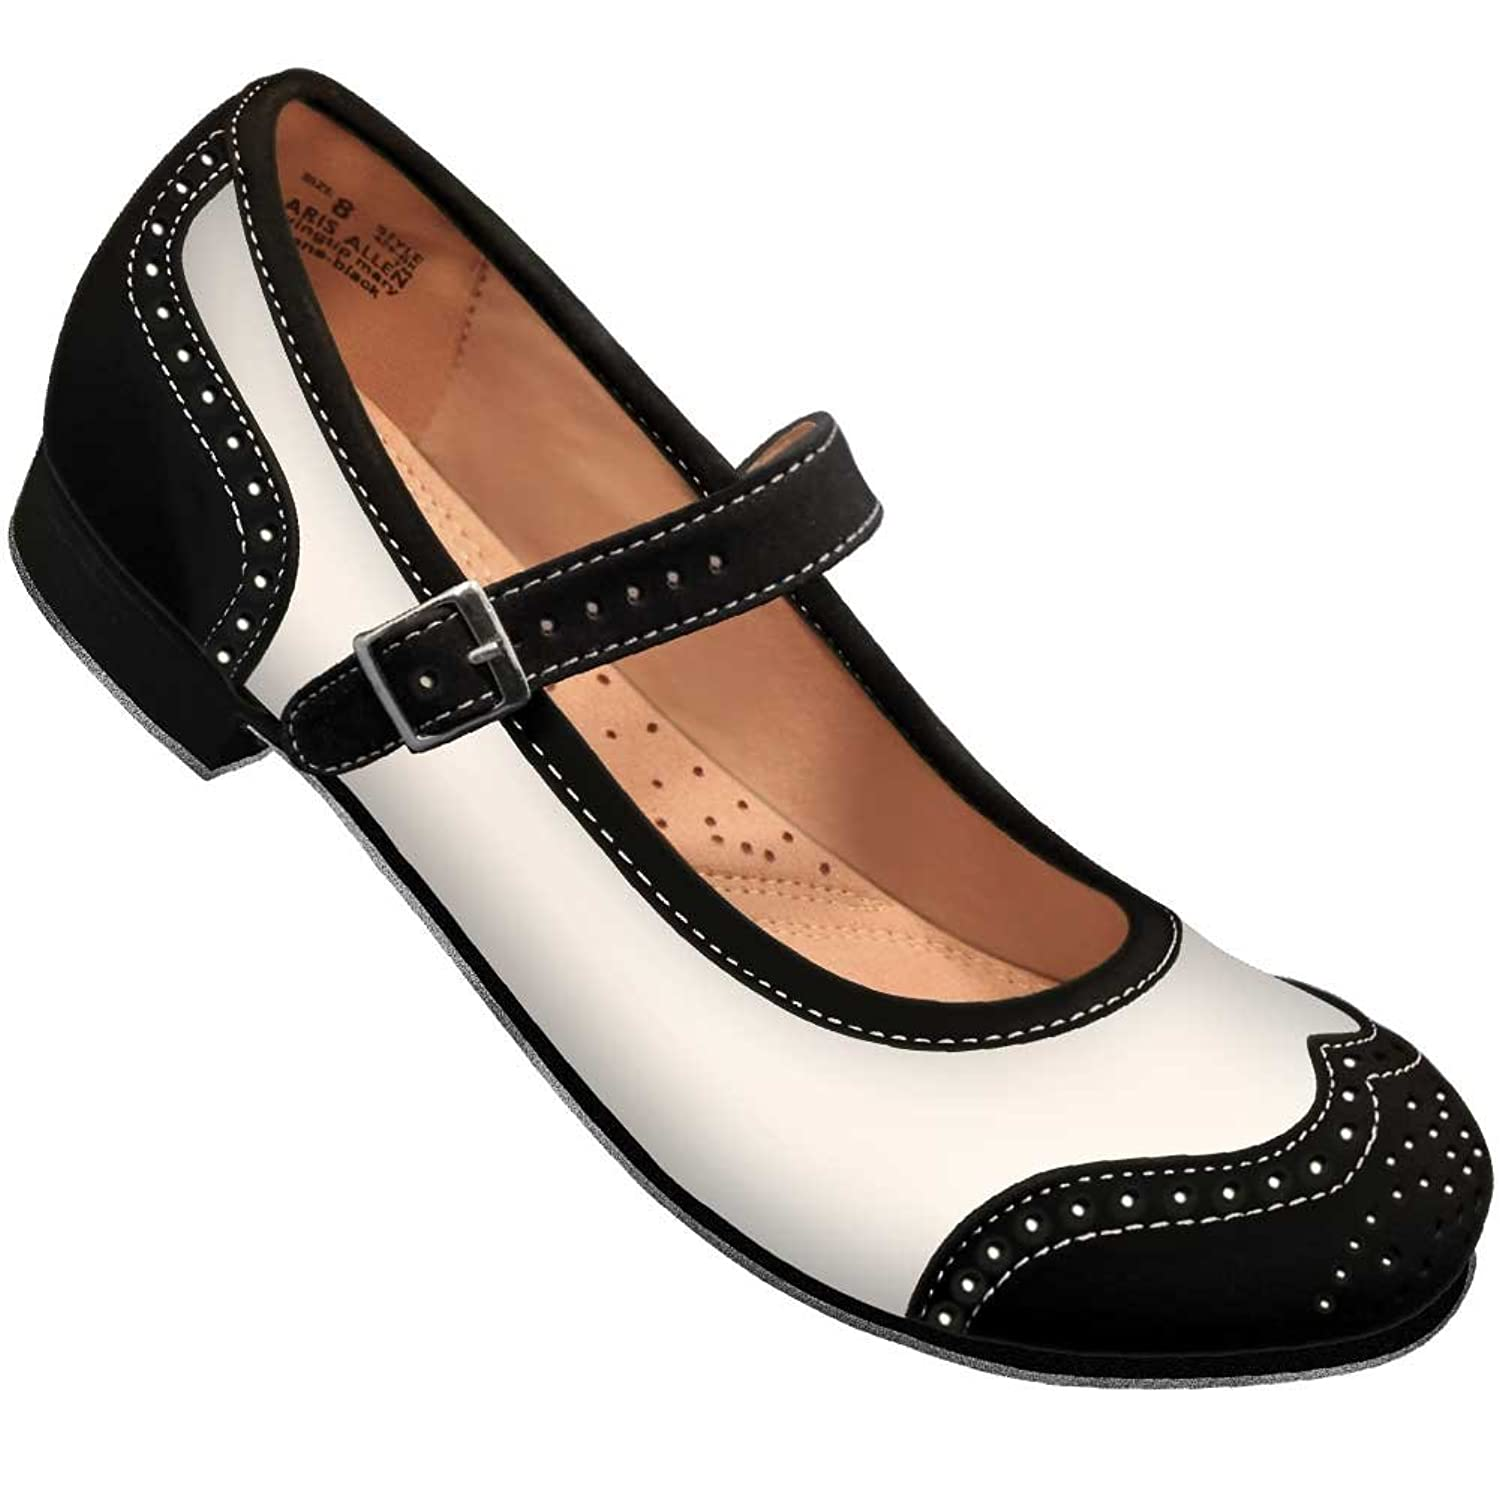 Retro Style Dance Shoes Aris Allen Black and Ivory Snub Toe Mary Jane Wingtips $48.95 AT vintagedancer.com